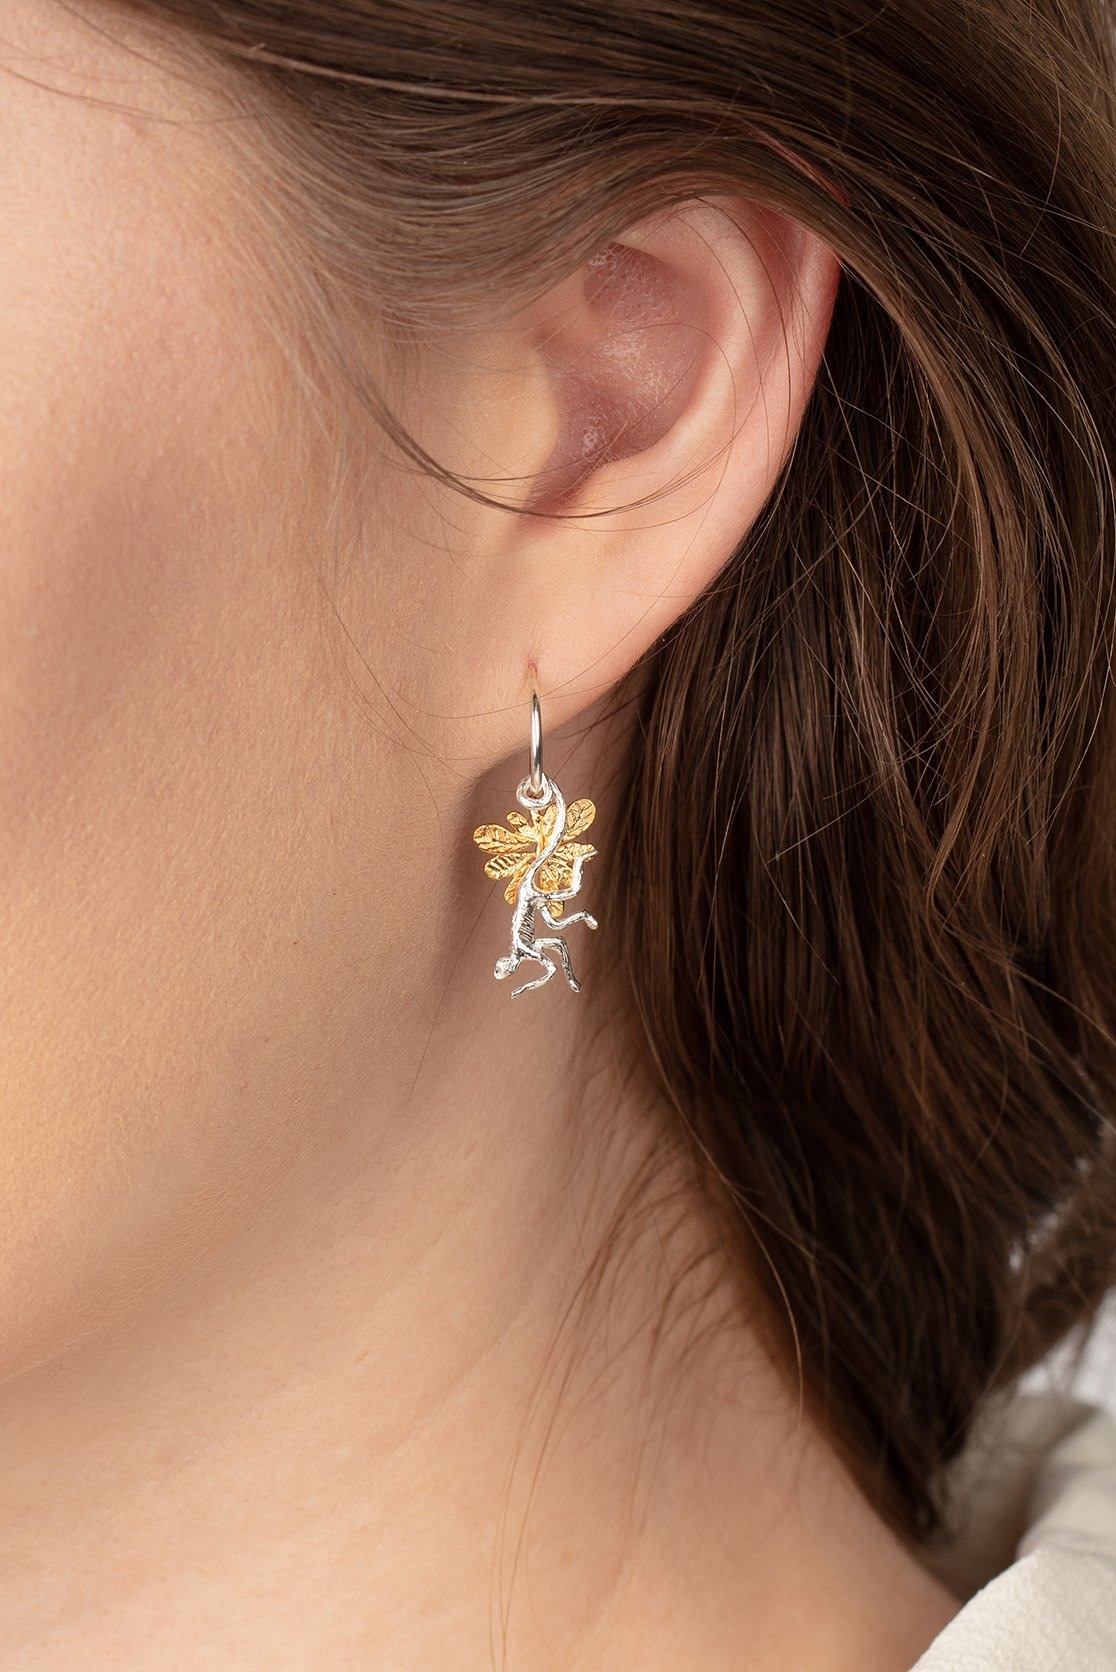 Spider monkey earrings